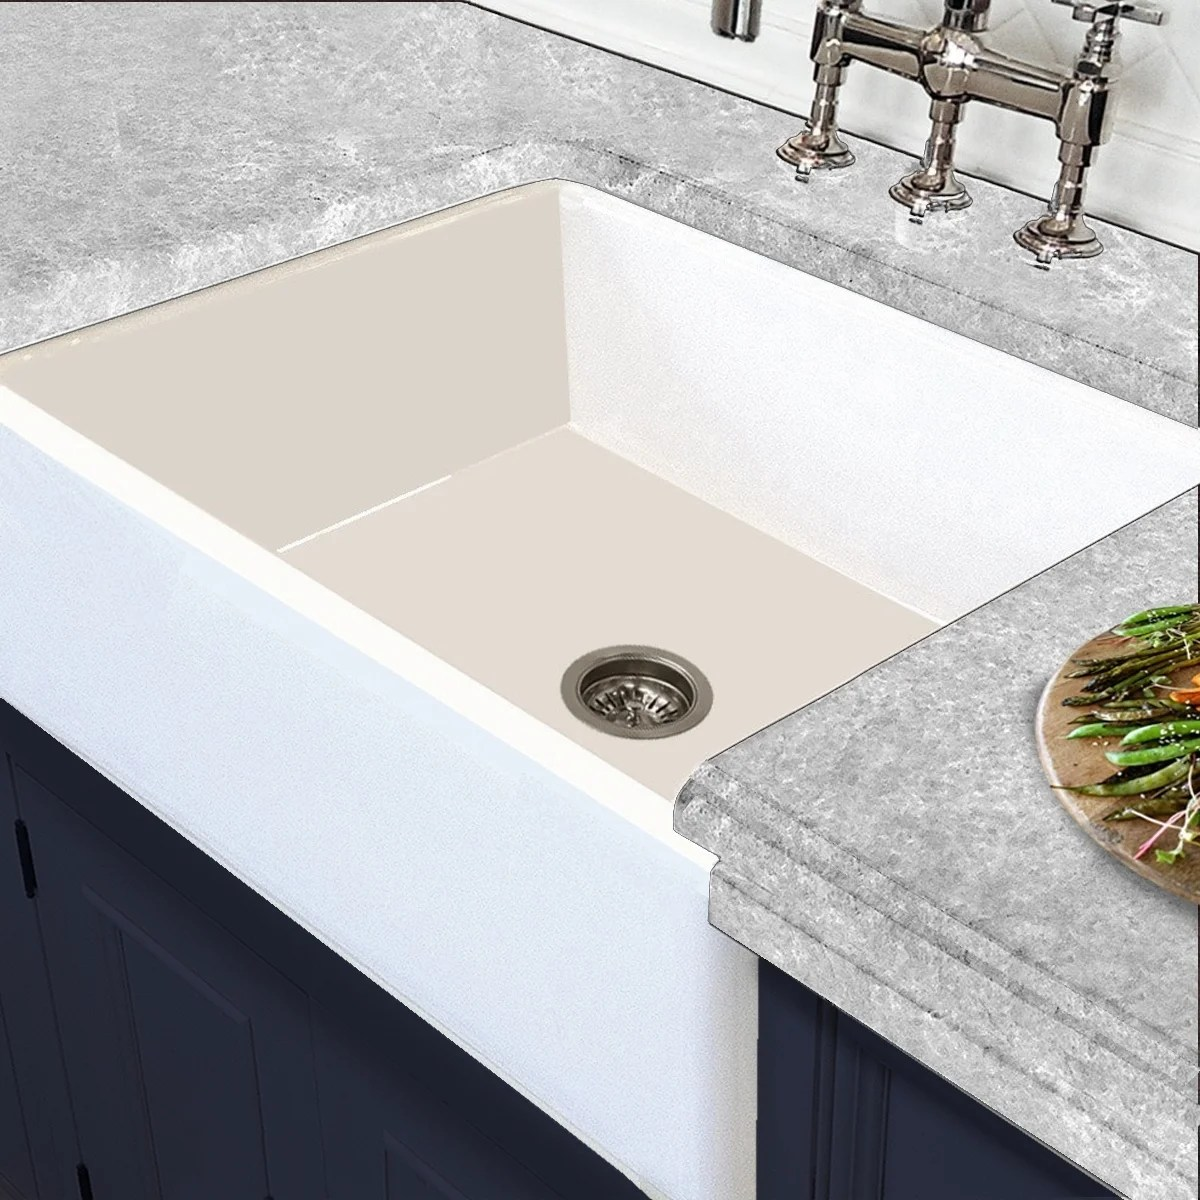 Stone Farmhouse Sink Lowest Price Buy Farmhouse Kitchen Sinks Online At Overstock Our Best Sinks Deals